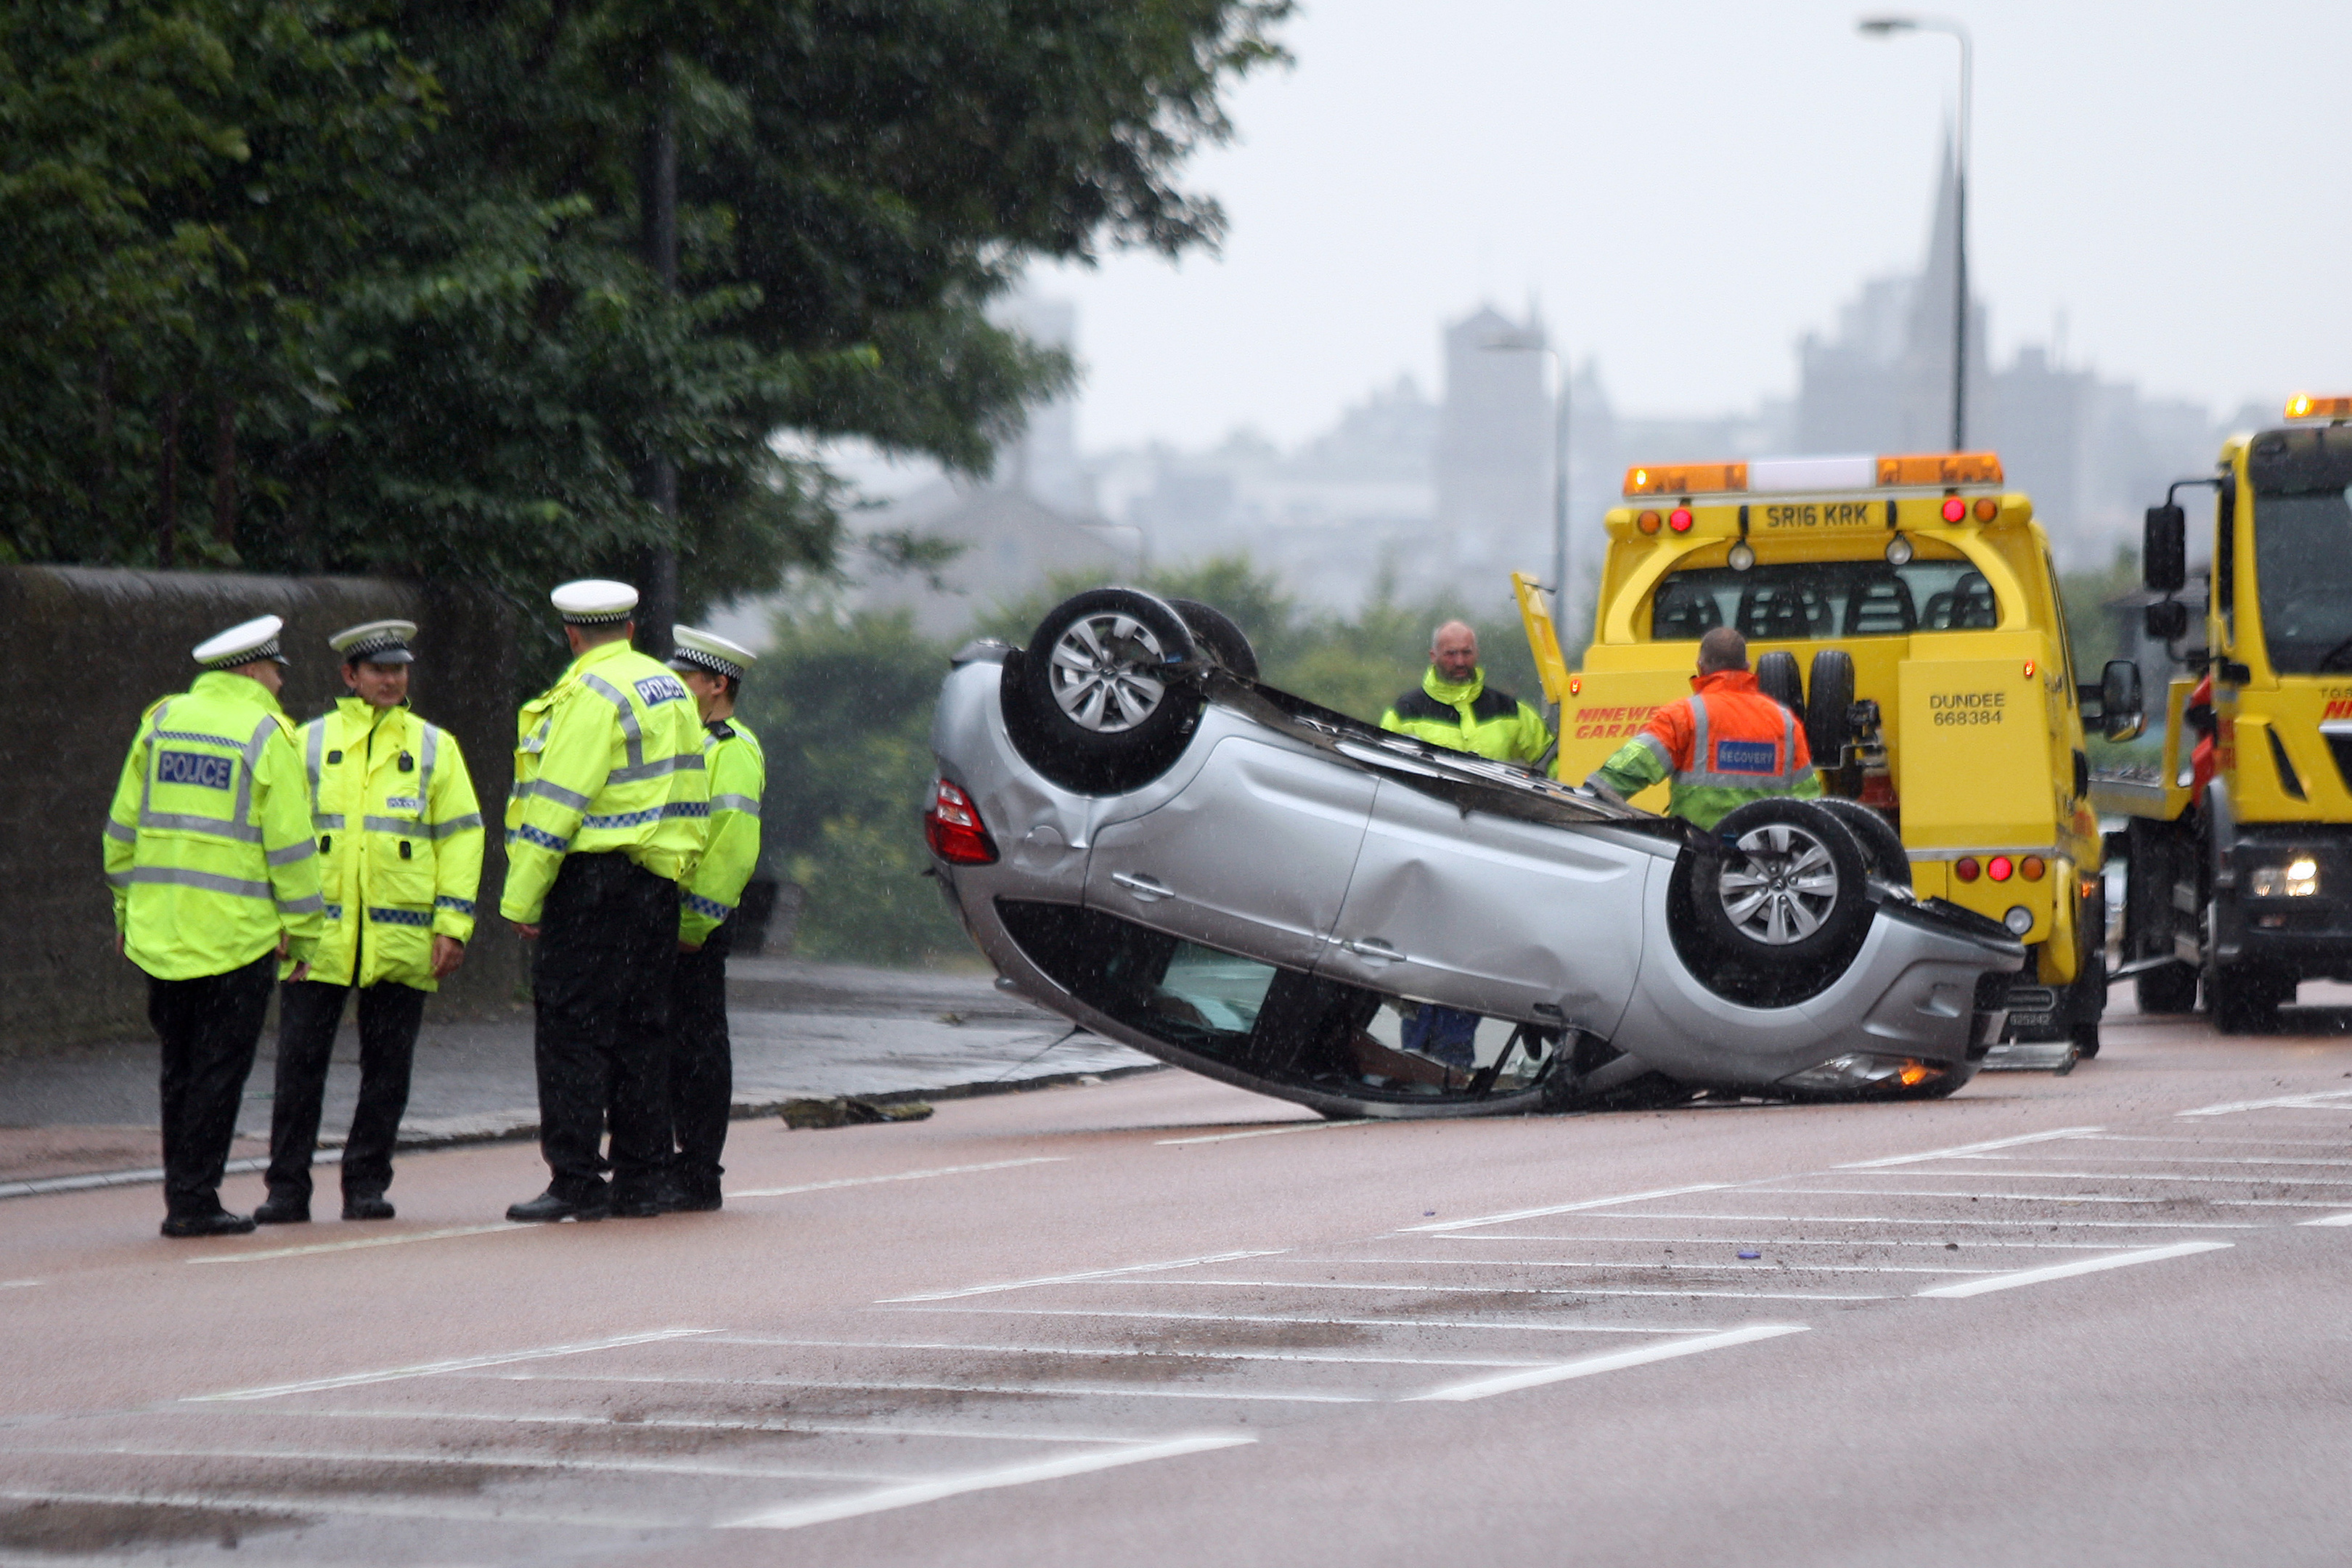 The overturned car.